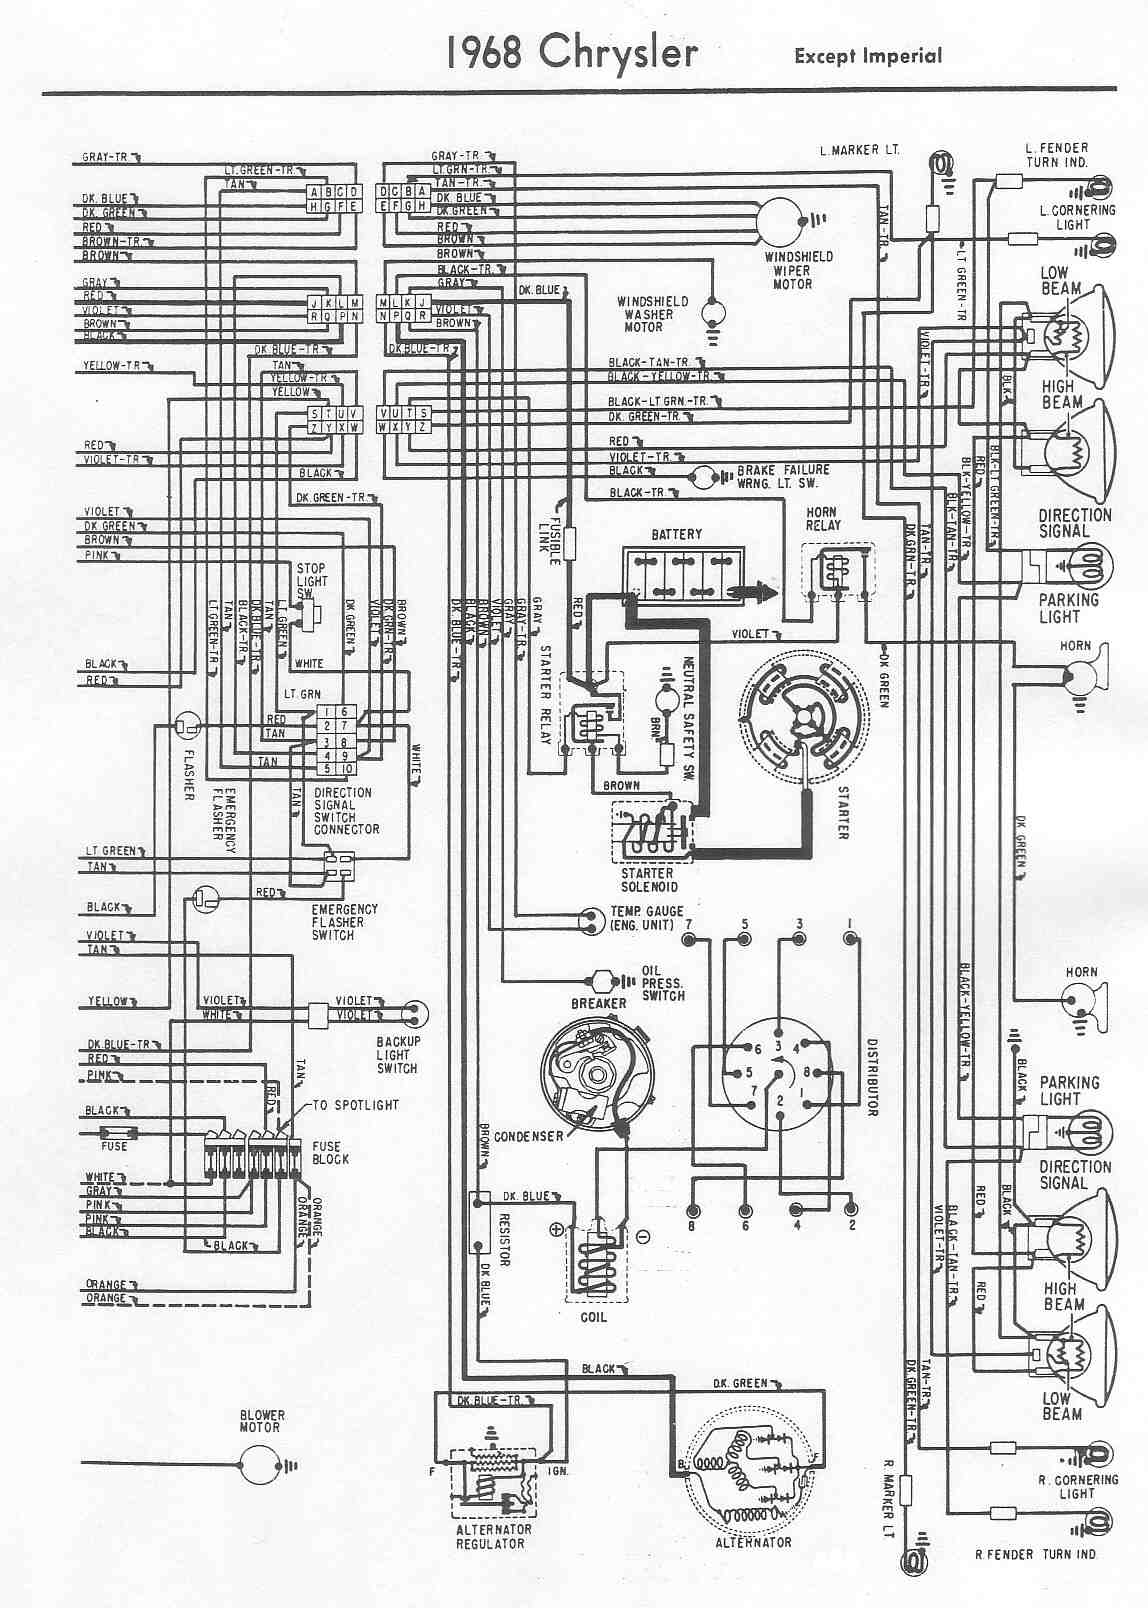 wiring diagram for 1966 plymouth valiant wiring diagram 1964 plymouth valiant 1965 plymouth barracuda wiring diagram [ 1148 x 1608 Pixel ]